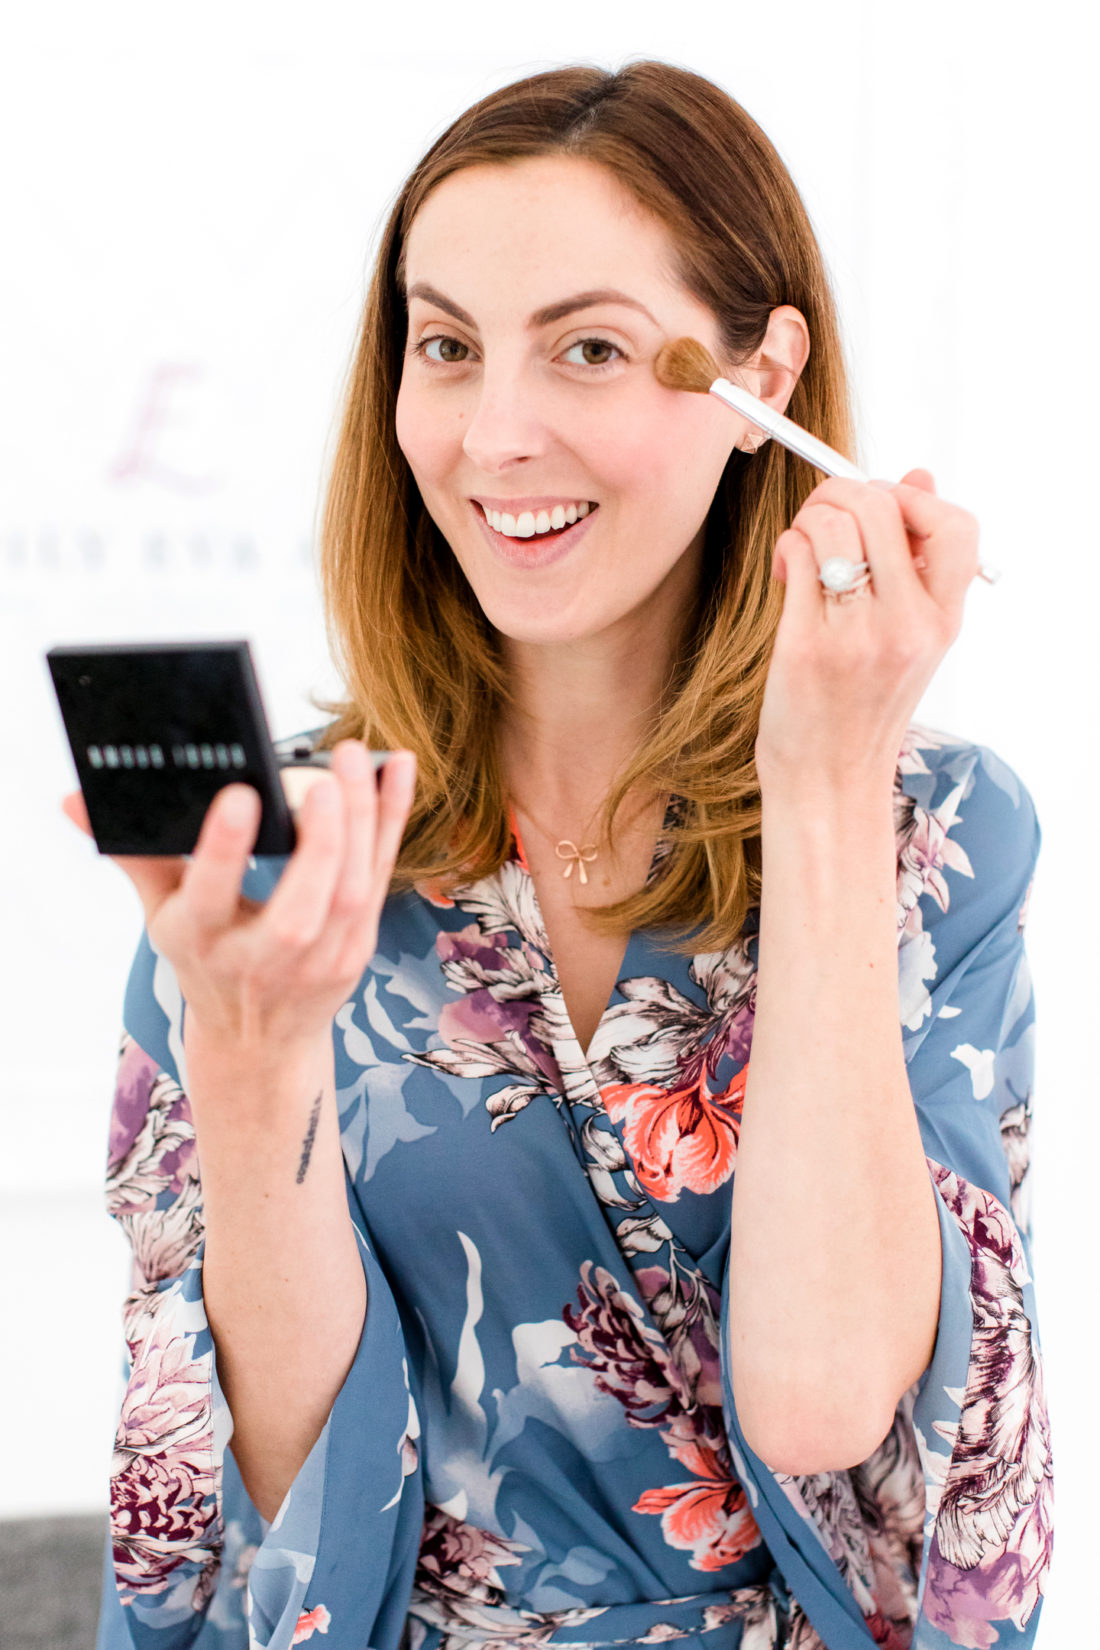 Eva Amurri Martino applies translucent powder to her skin over her foundation and concealer as part of her makeup tutorial